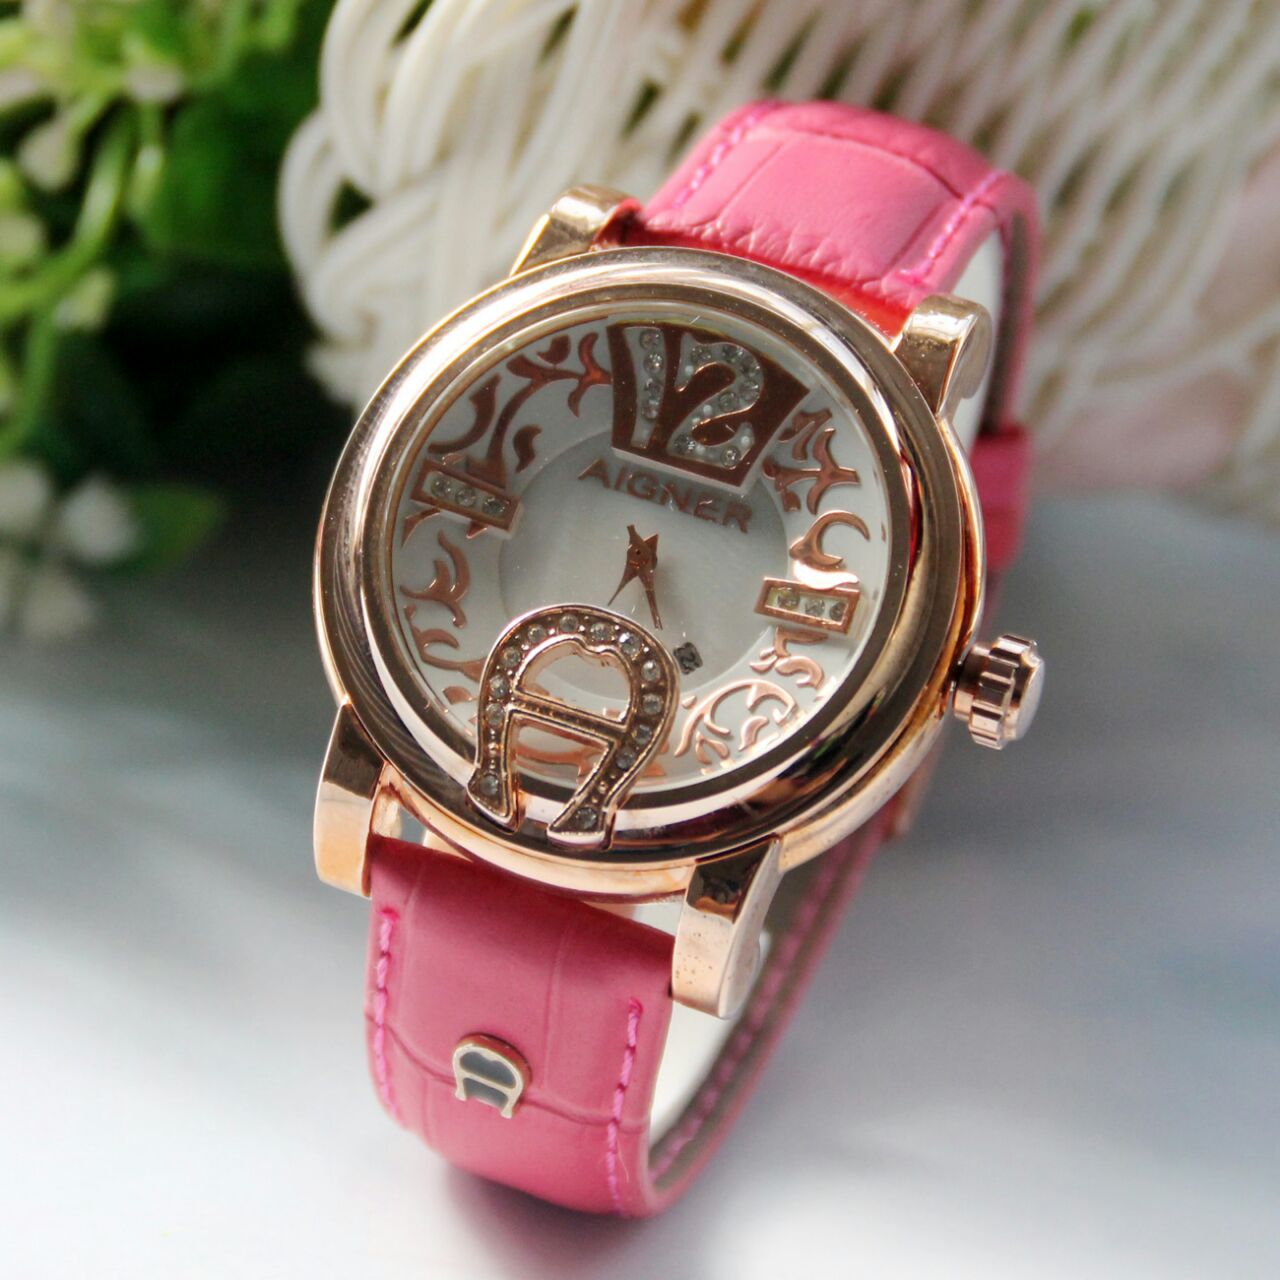 Jam Tangan Fossil Angka 3d Brown Sepasang Tangania Wanita Gc Leather Aigner 007 Gd